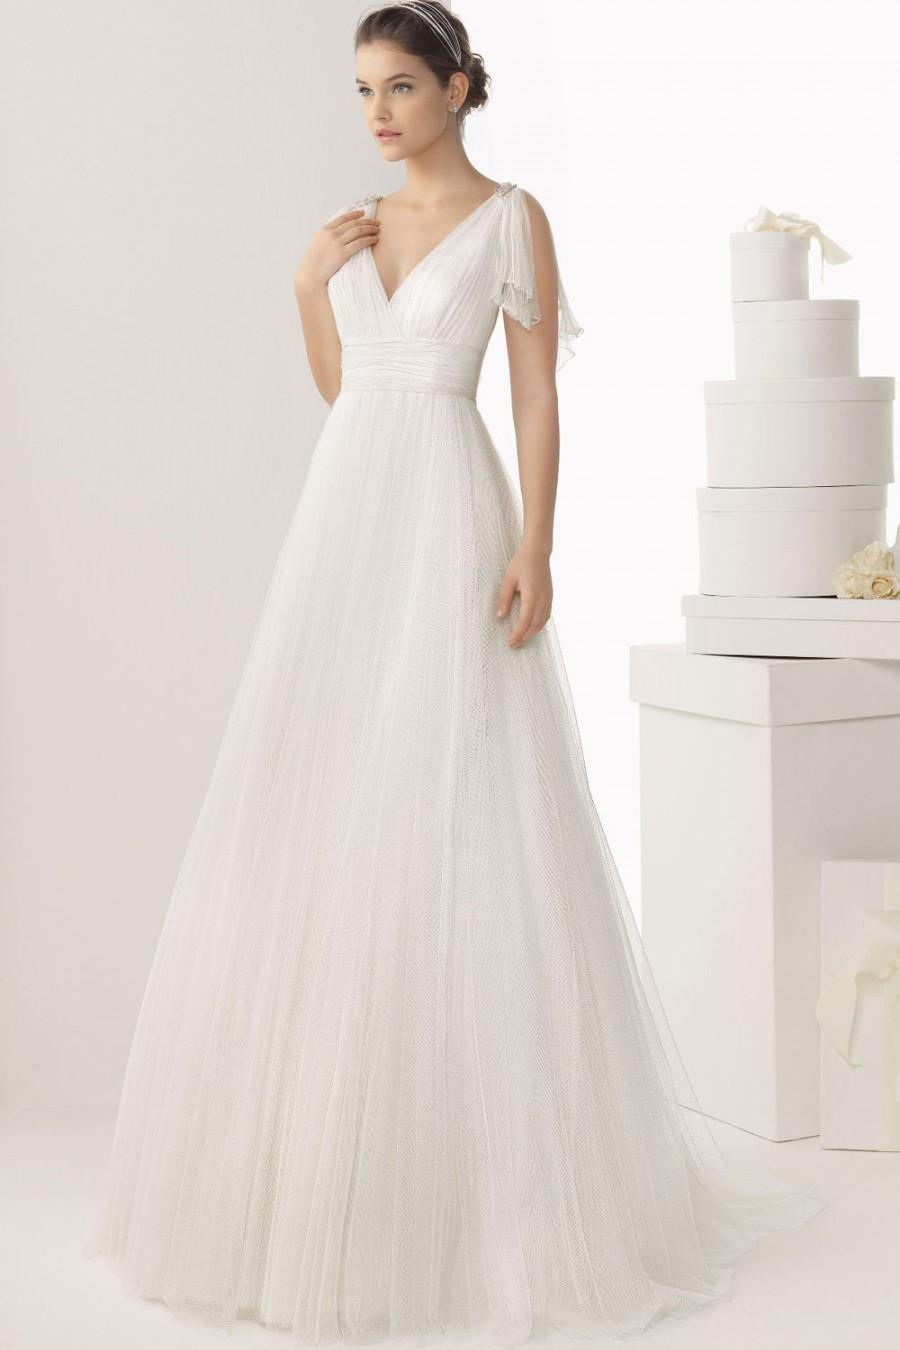 Y V Neck Back Empire Tulle White Wedding Dress Uk